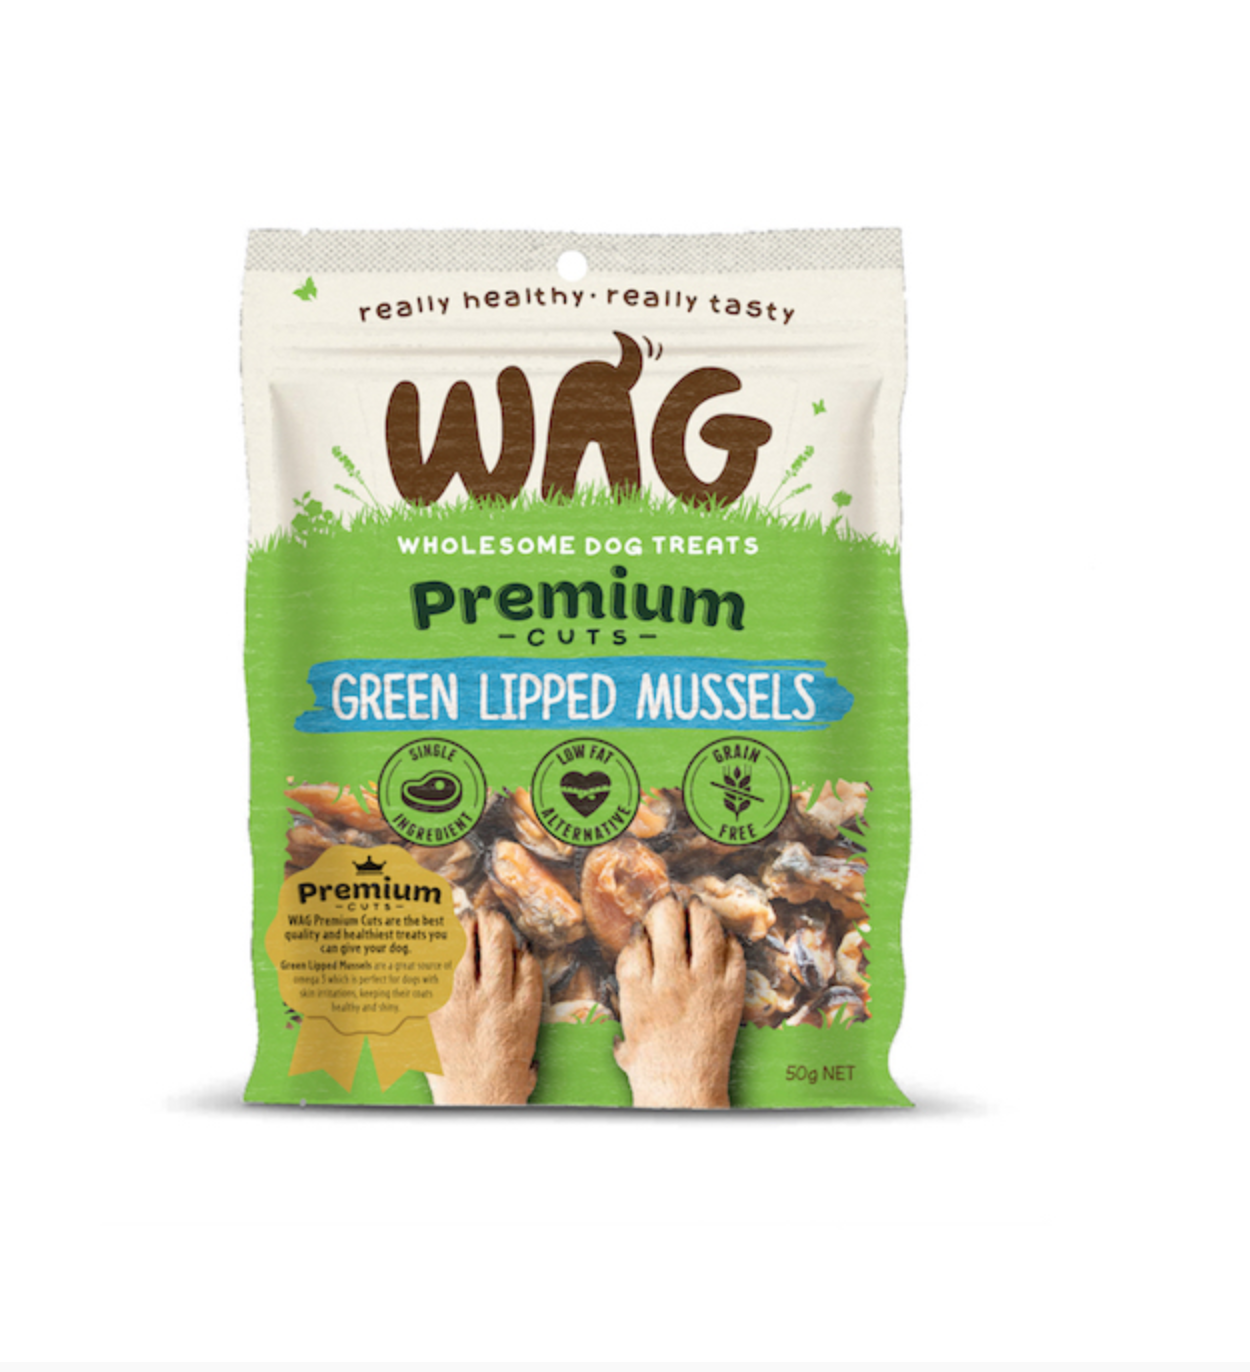 Green Lipped Mussels (50g Bag)